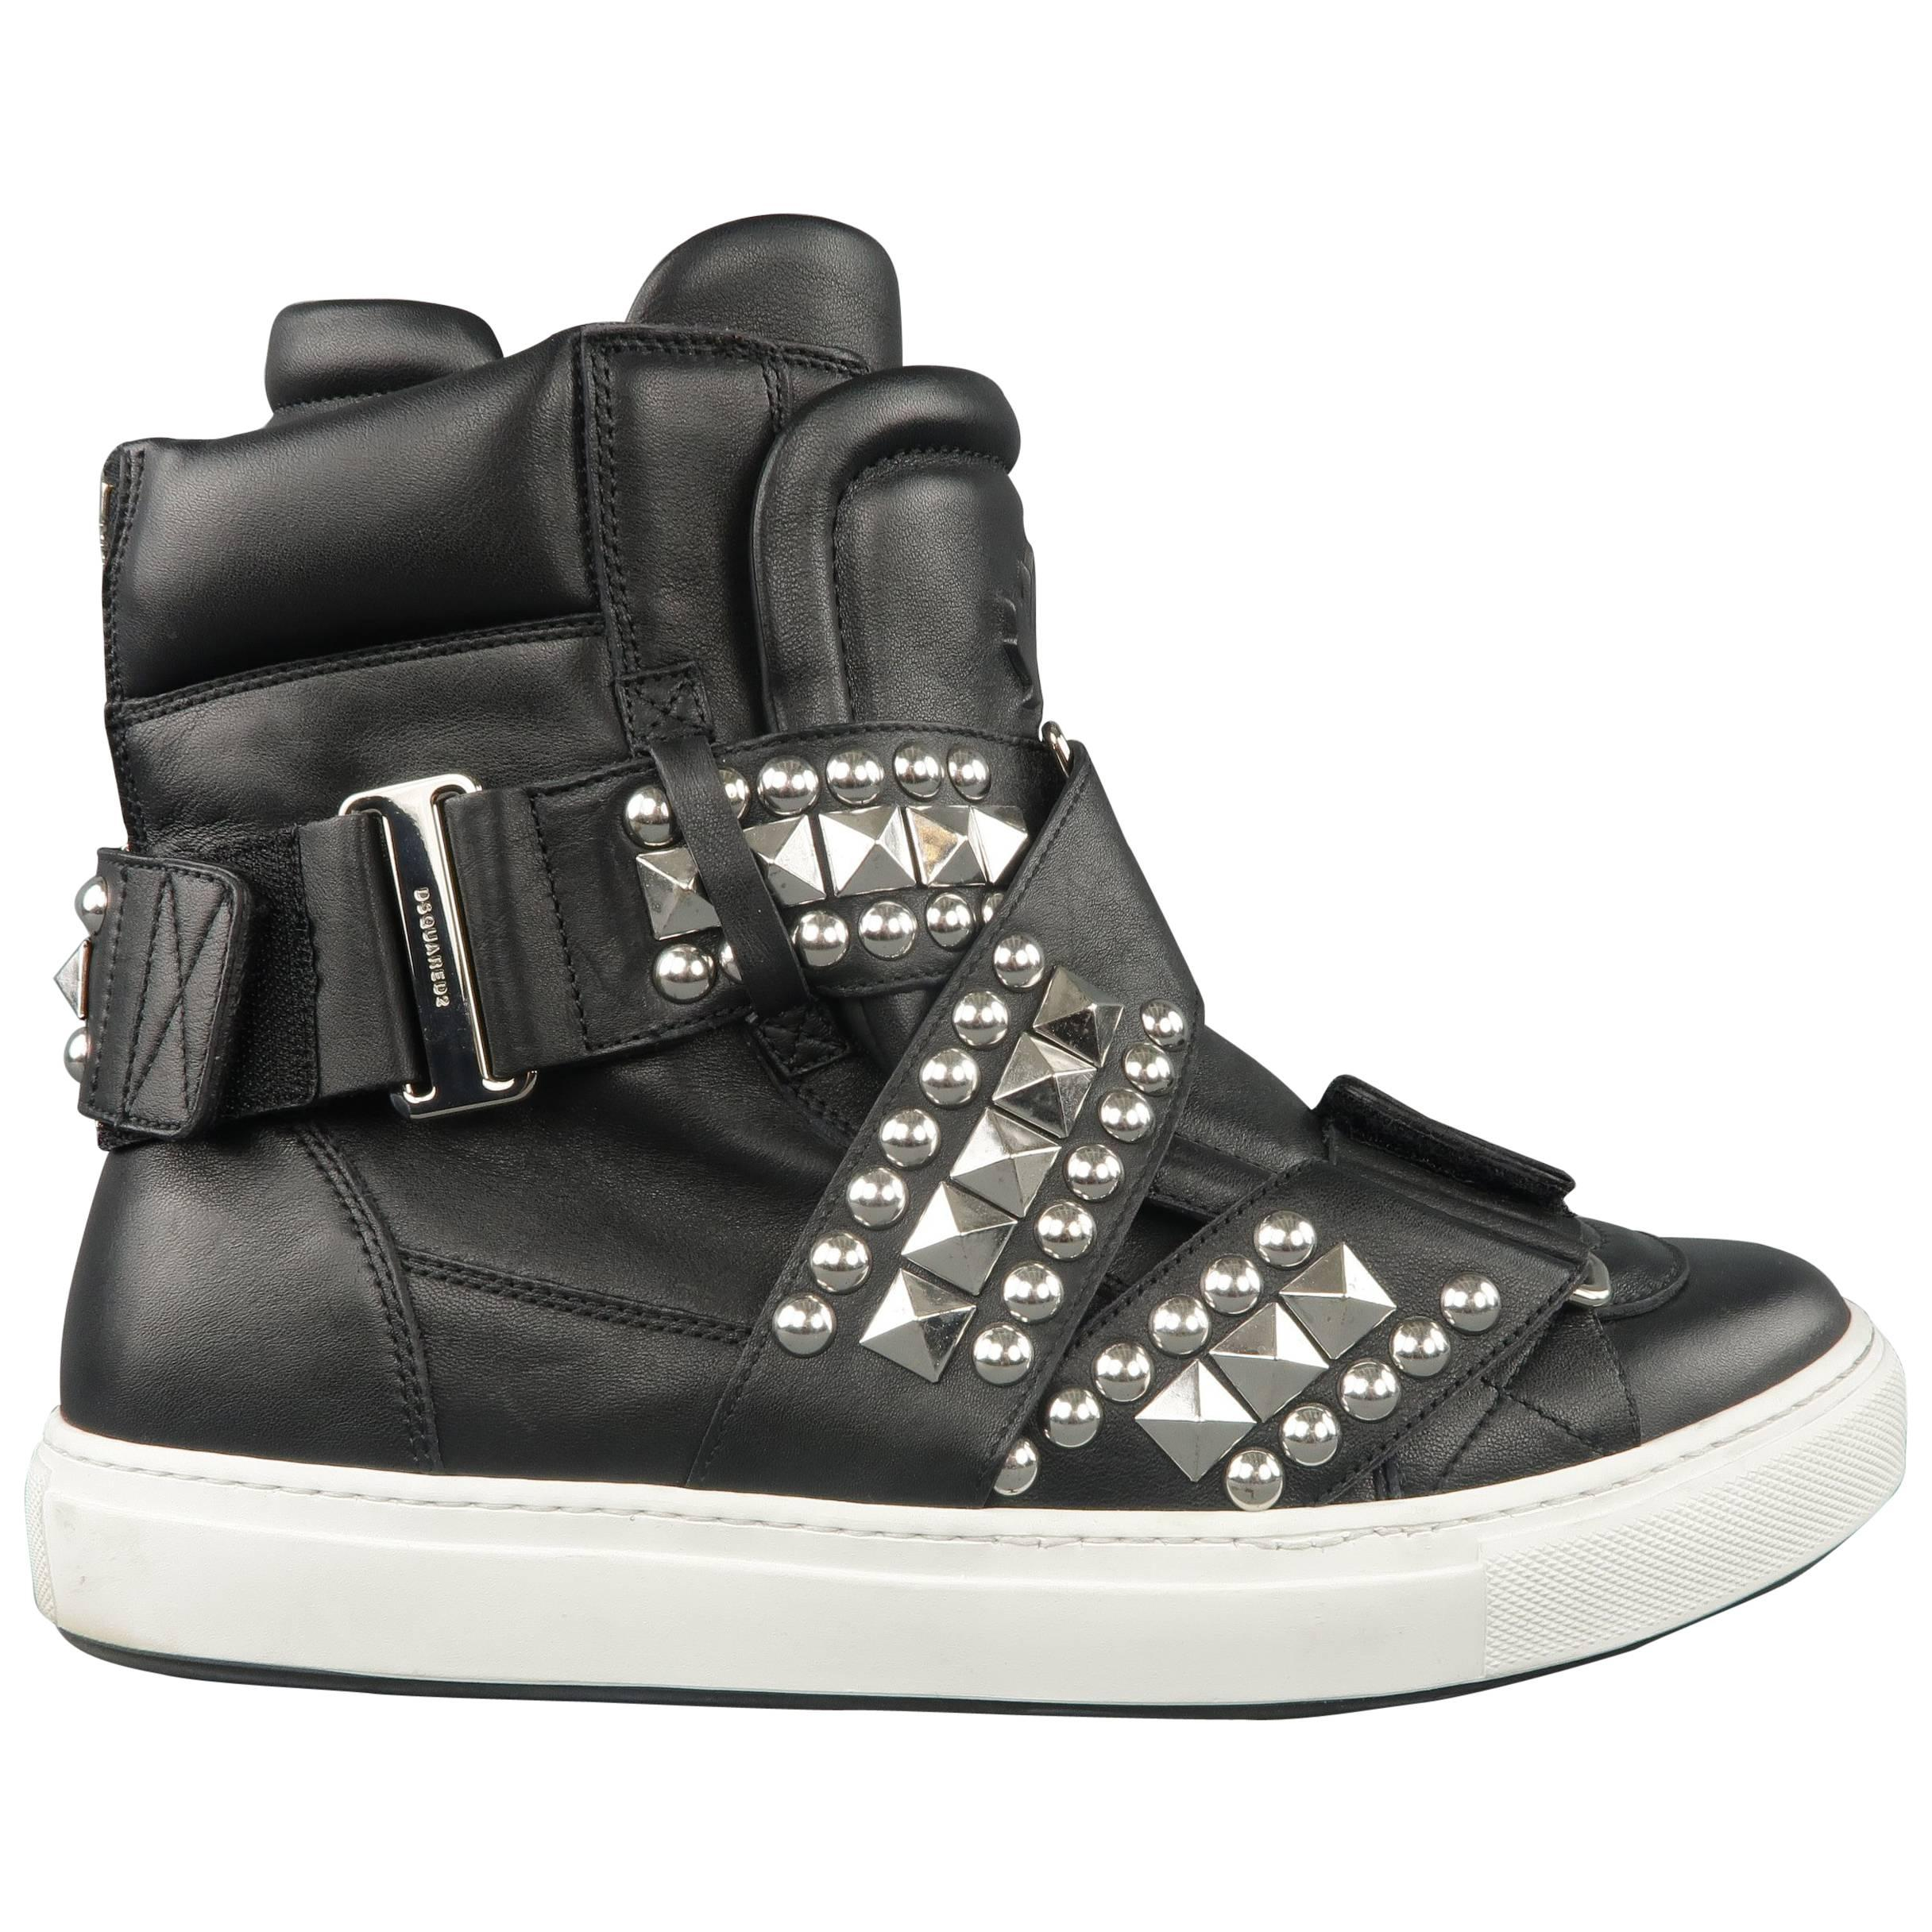 ad25f914e7f5 GIUSEPPE ZANOTTI Sneakers 10 Black Textured Leather Silver Chain Bangle High  Top at 1stdibs